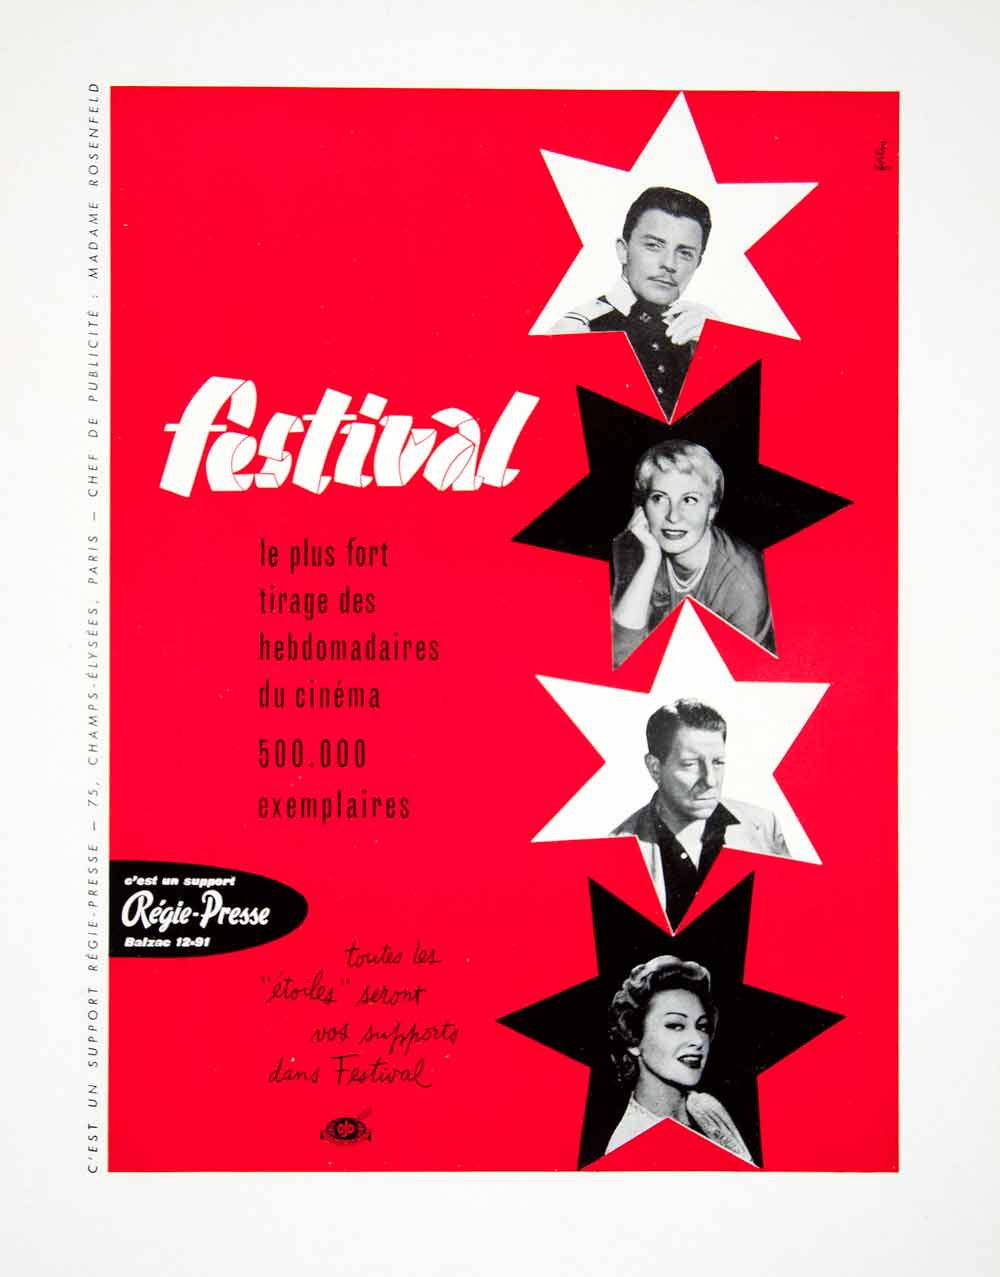 1956 Ad Festival Cinema Advertisement French Stars Fortin Advertising VEN6